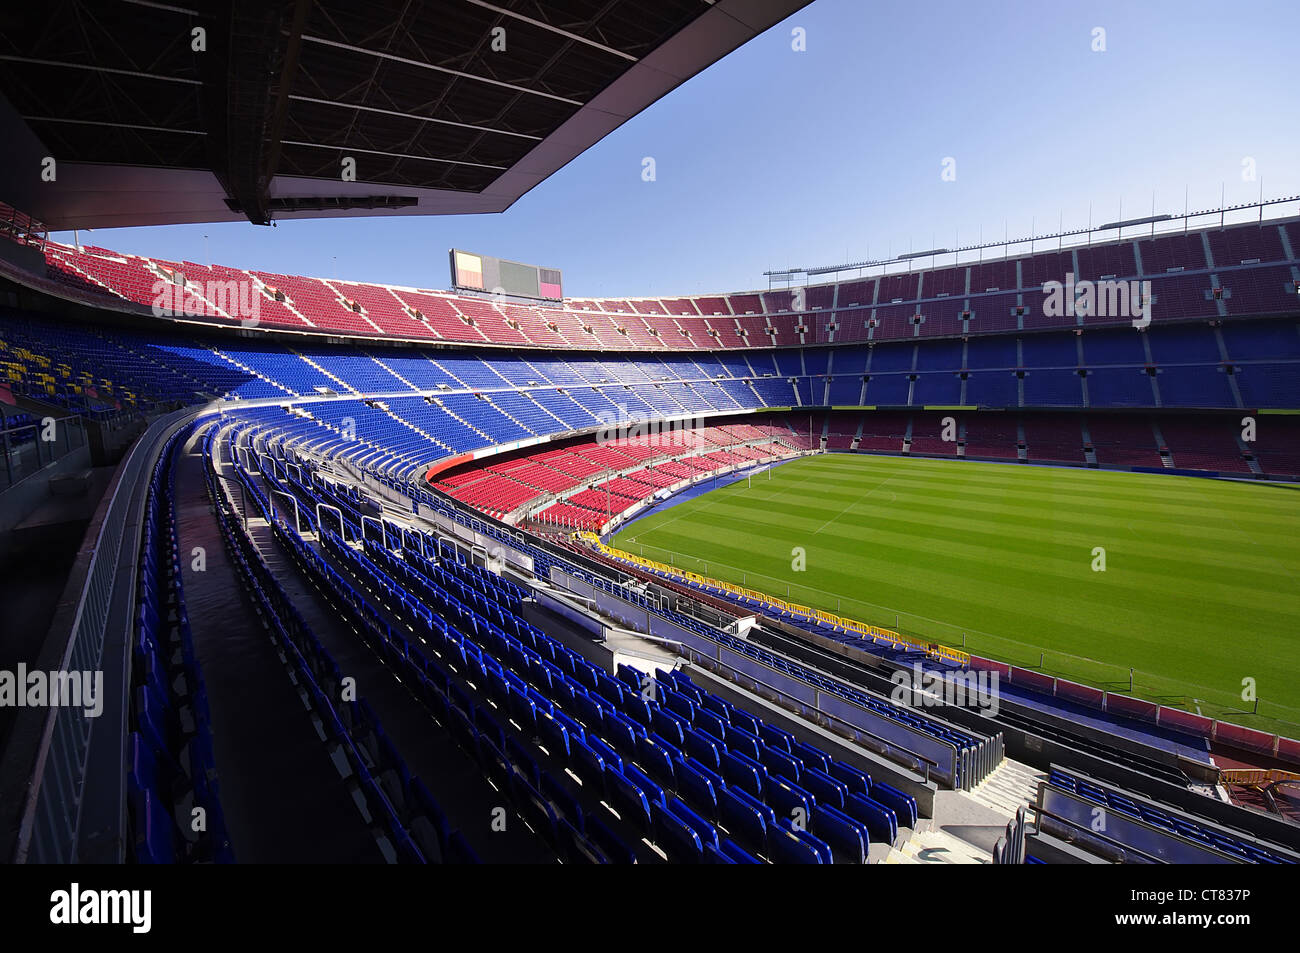 wide view of FC Barcelona (Nou Camp) soccer stadium - Stock Image